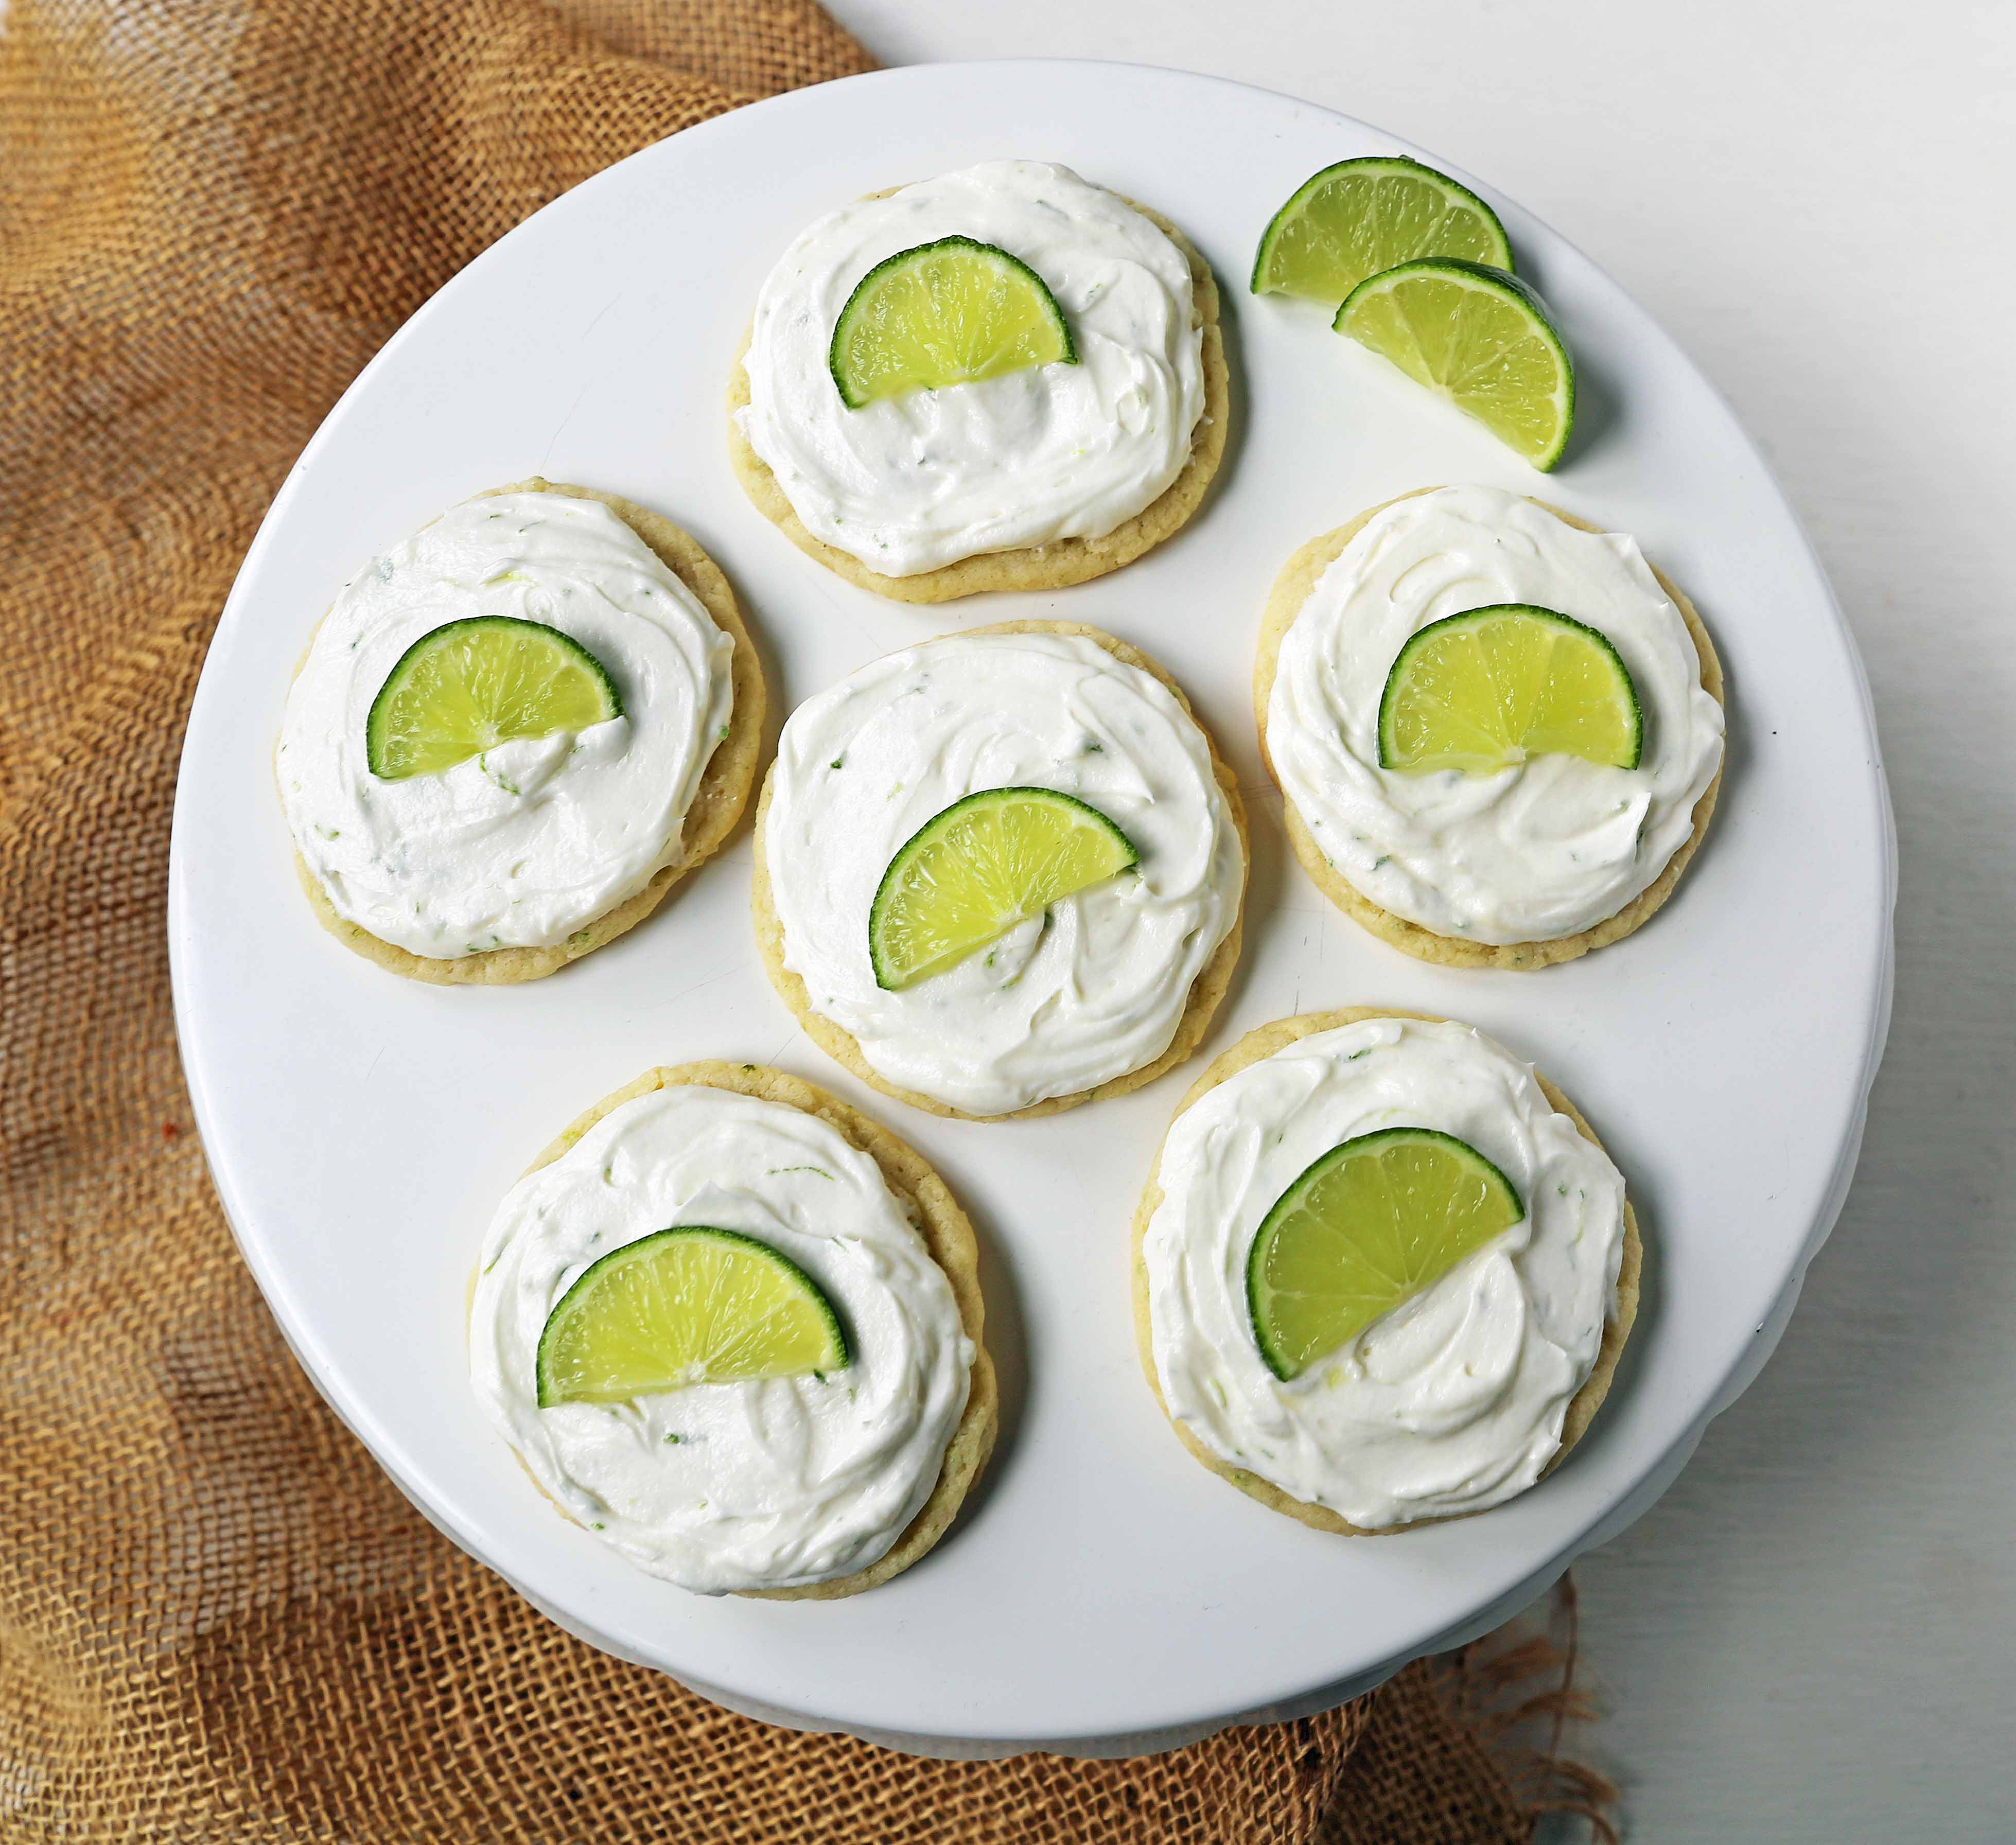 Key Lime Cookies with Coconut Lime Frosting. Chewy fresh coconut lime cookies with a creamy coconut lime frosting. The perfect tropical Caribbean cookie! www.modernhoney.com #keylimecookie #limecookie #coconutlimecookie